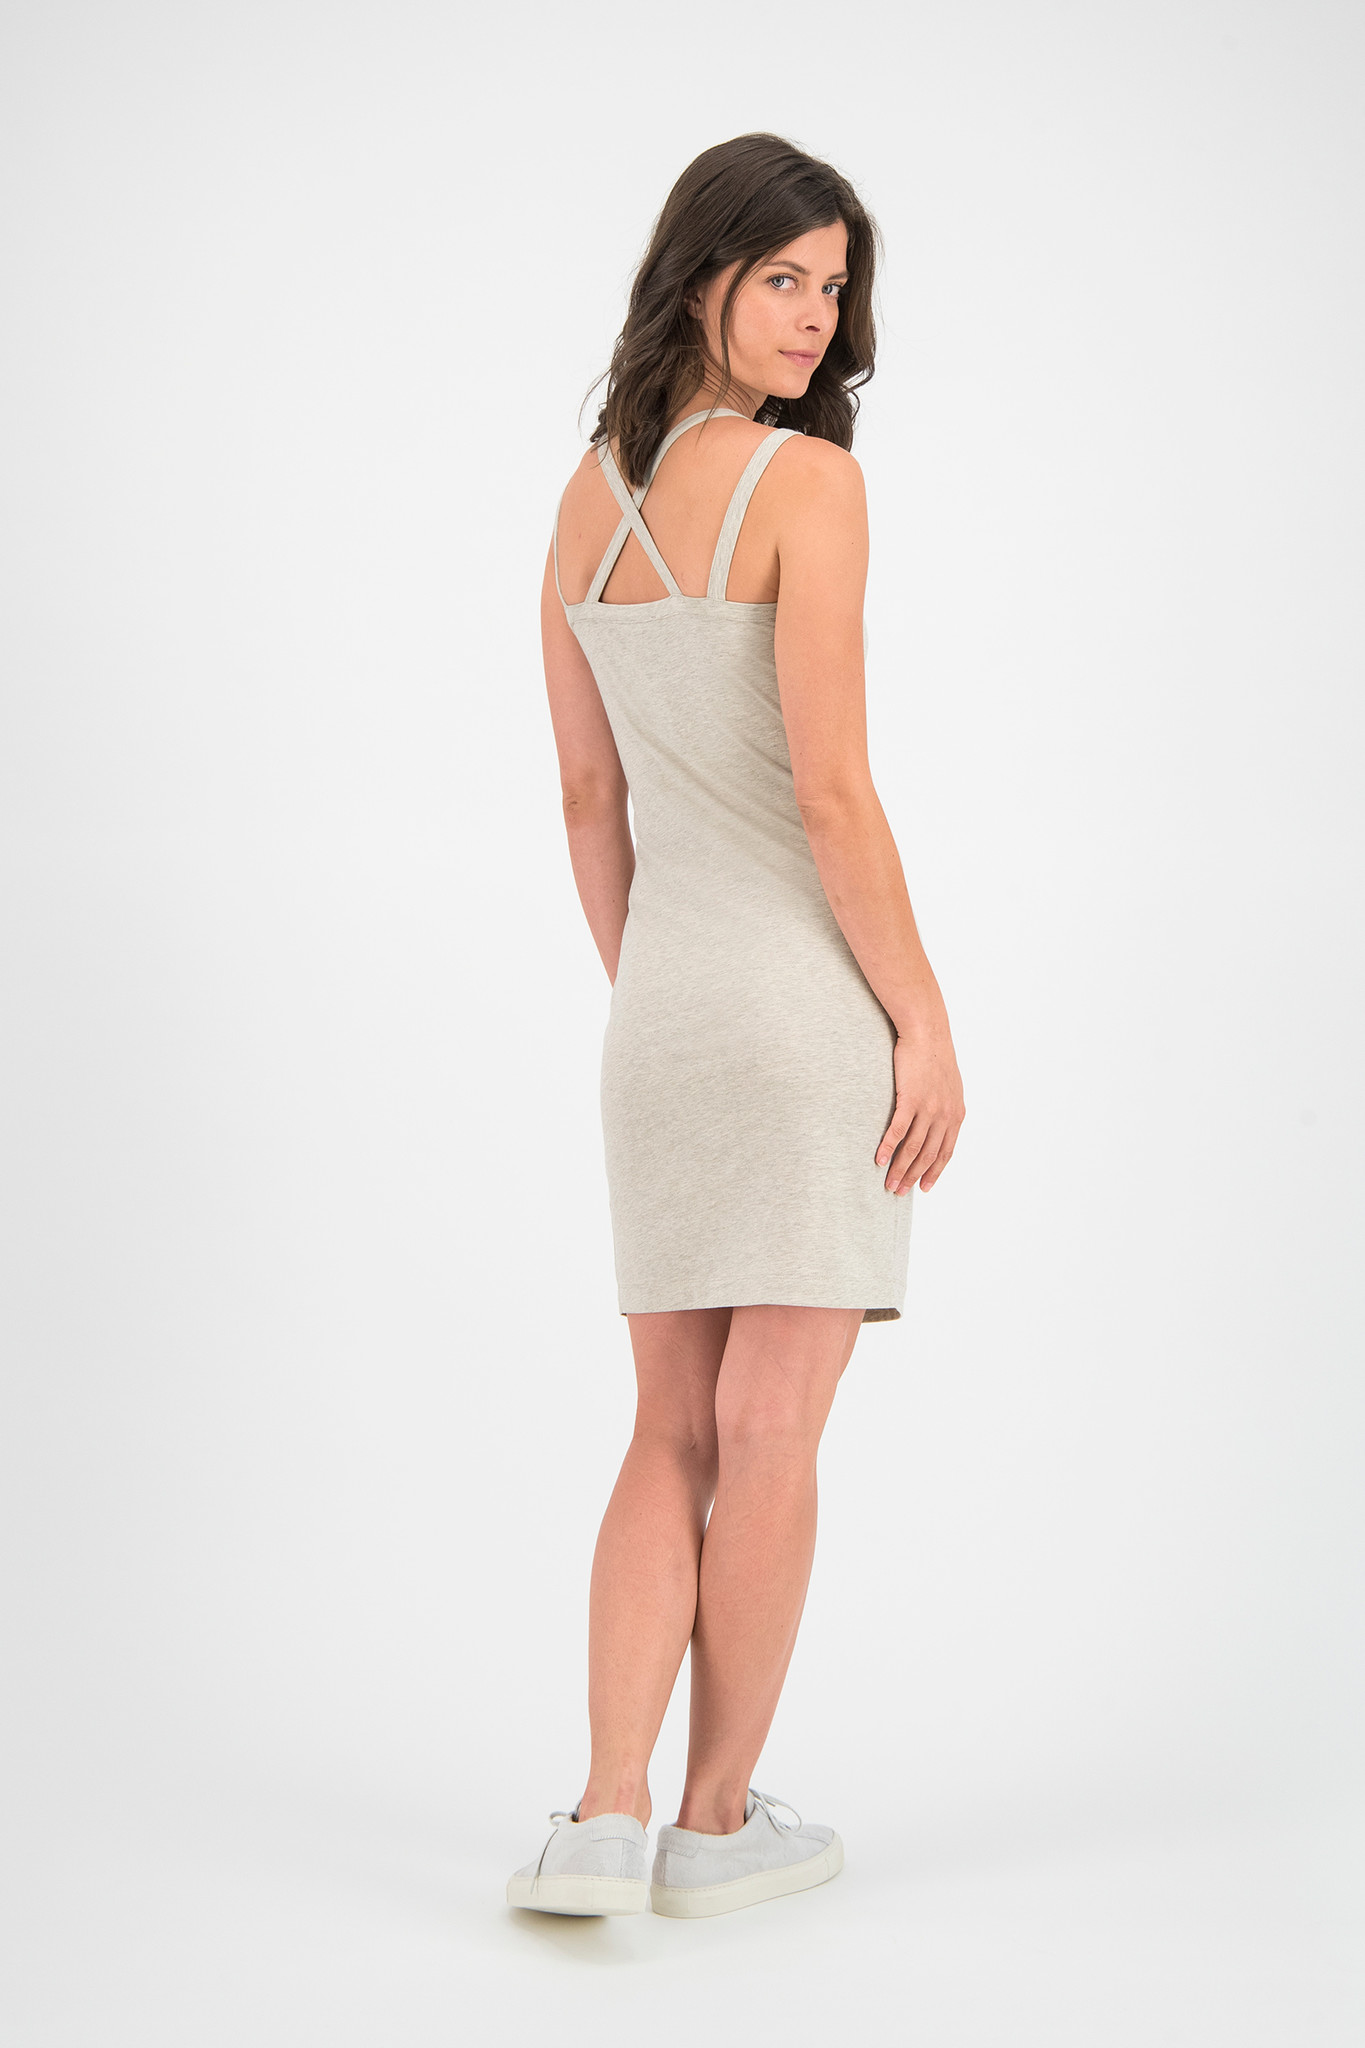 SYLVER Cotton Elastane Dress - Oatmeal